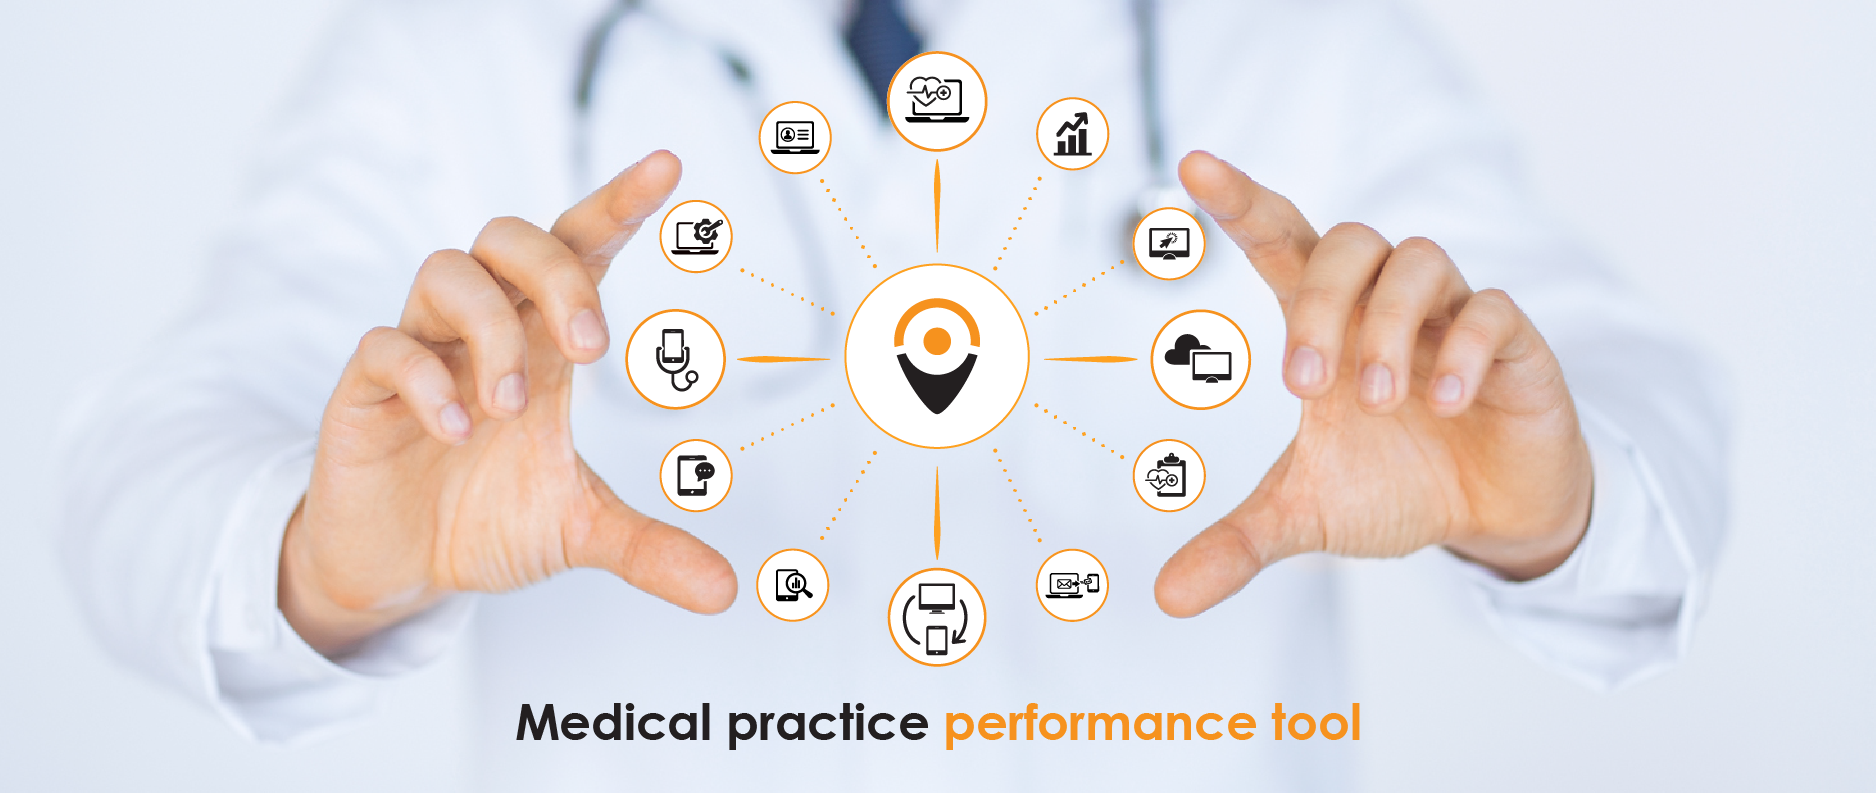 Medical practice performance tool